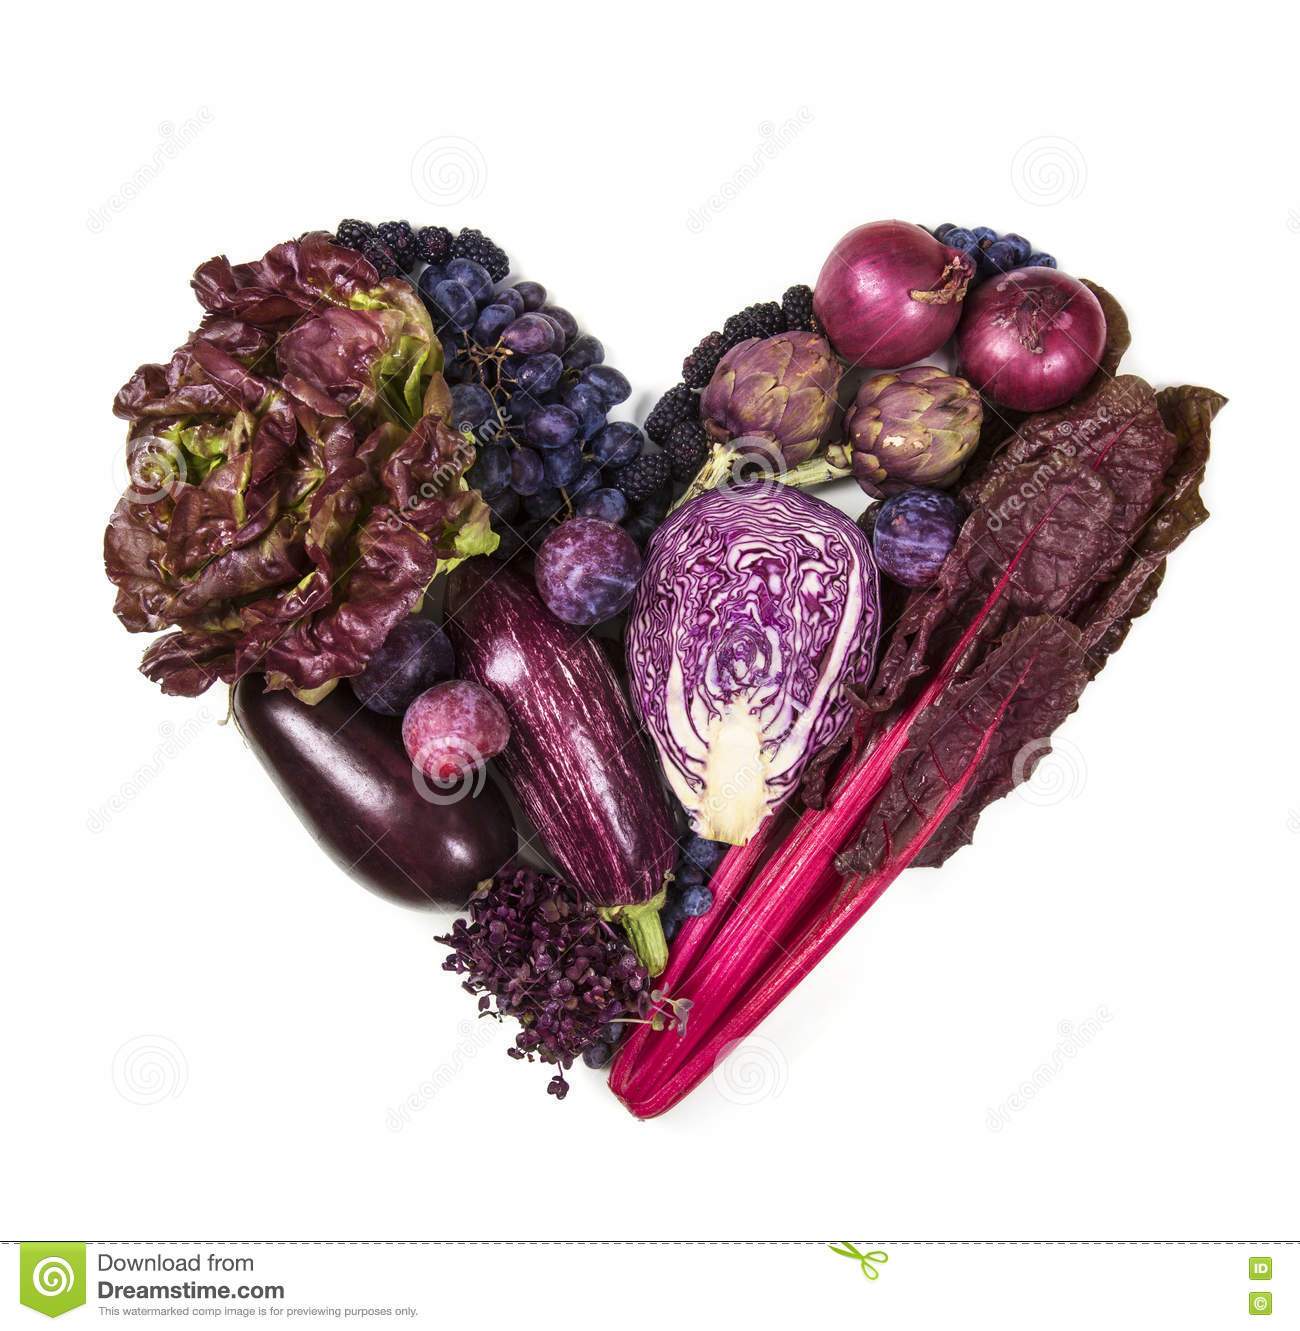 Image result for images of purple colored food and vegetables